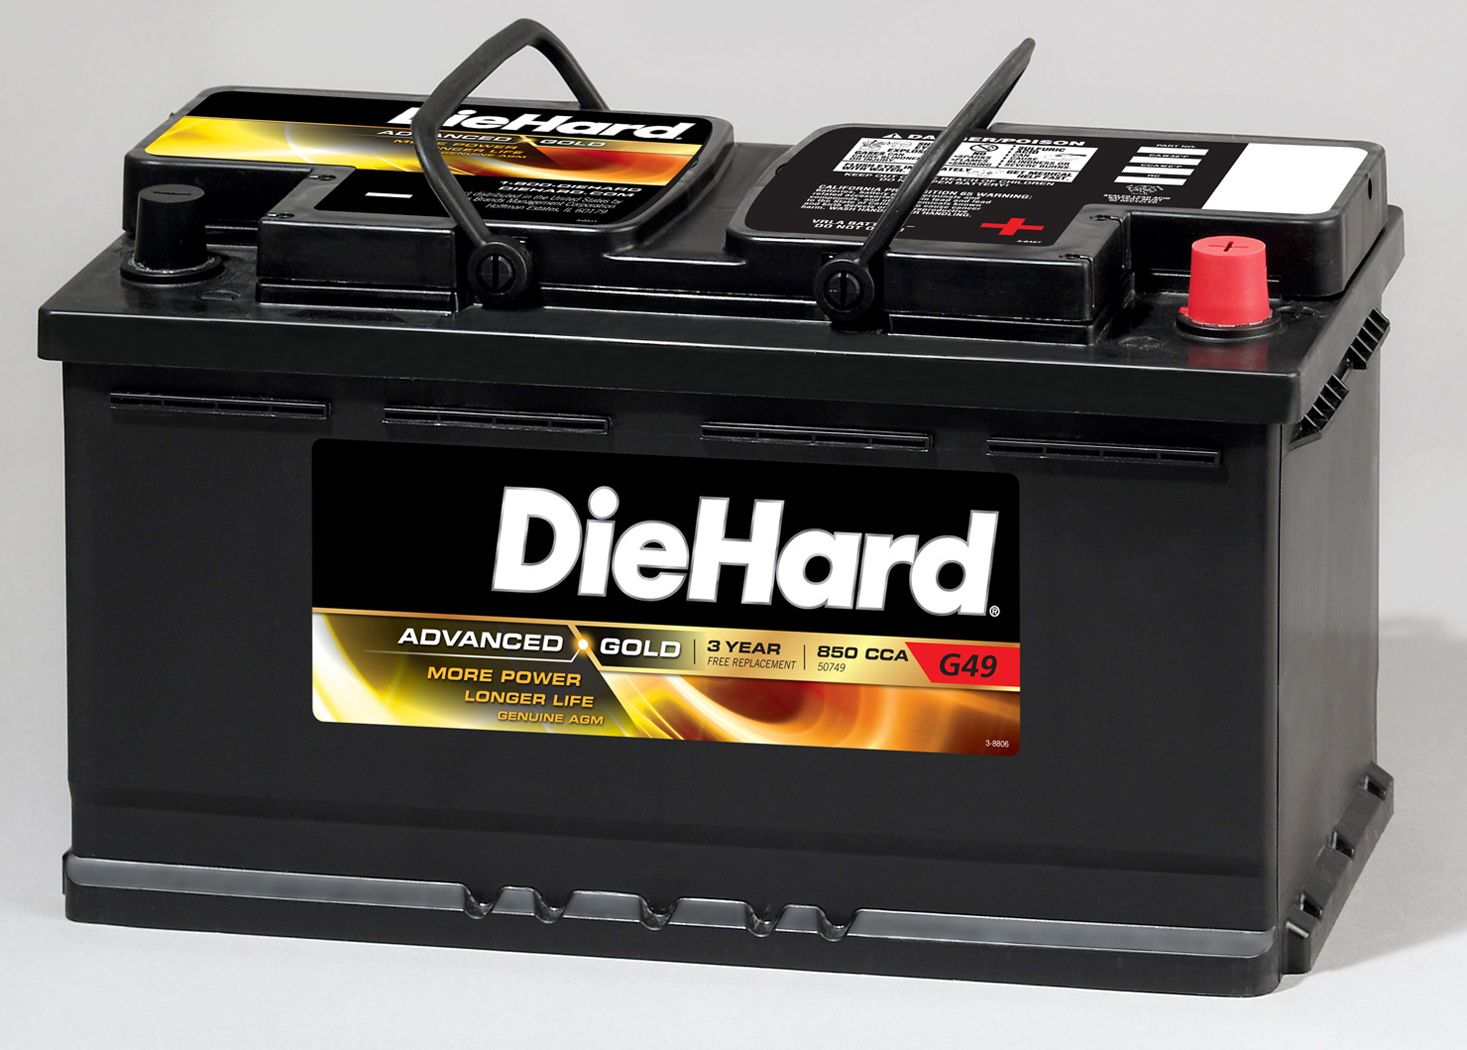 hight resolution of diehard gold agm automotive battery group size ep 49 price with exchange